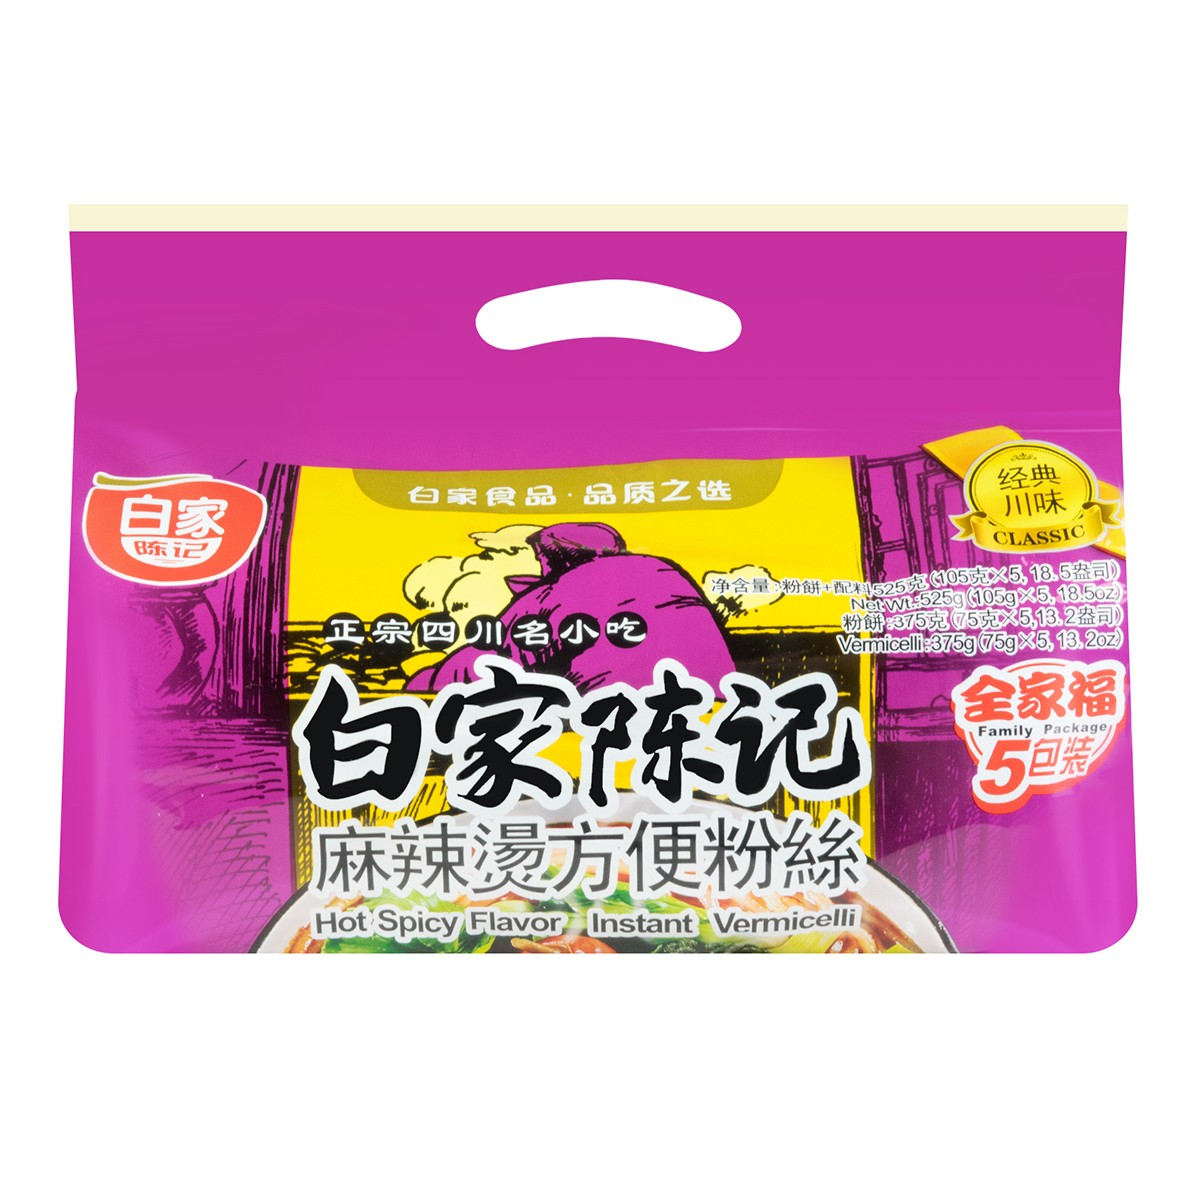 BAIJIA Instant Vermicelli 5packs -Spicy Flavor 5pcs